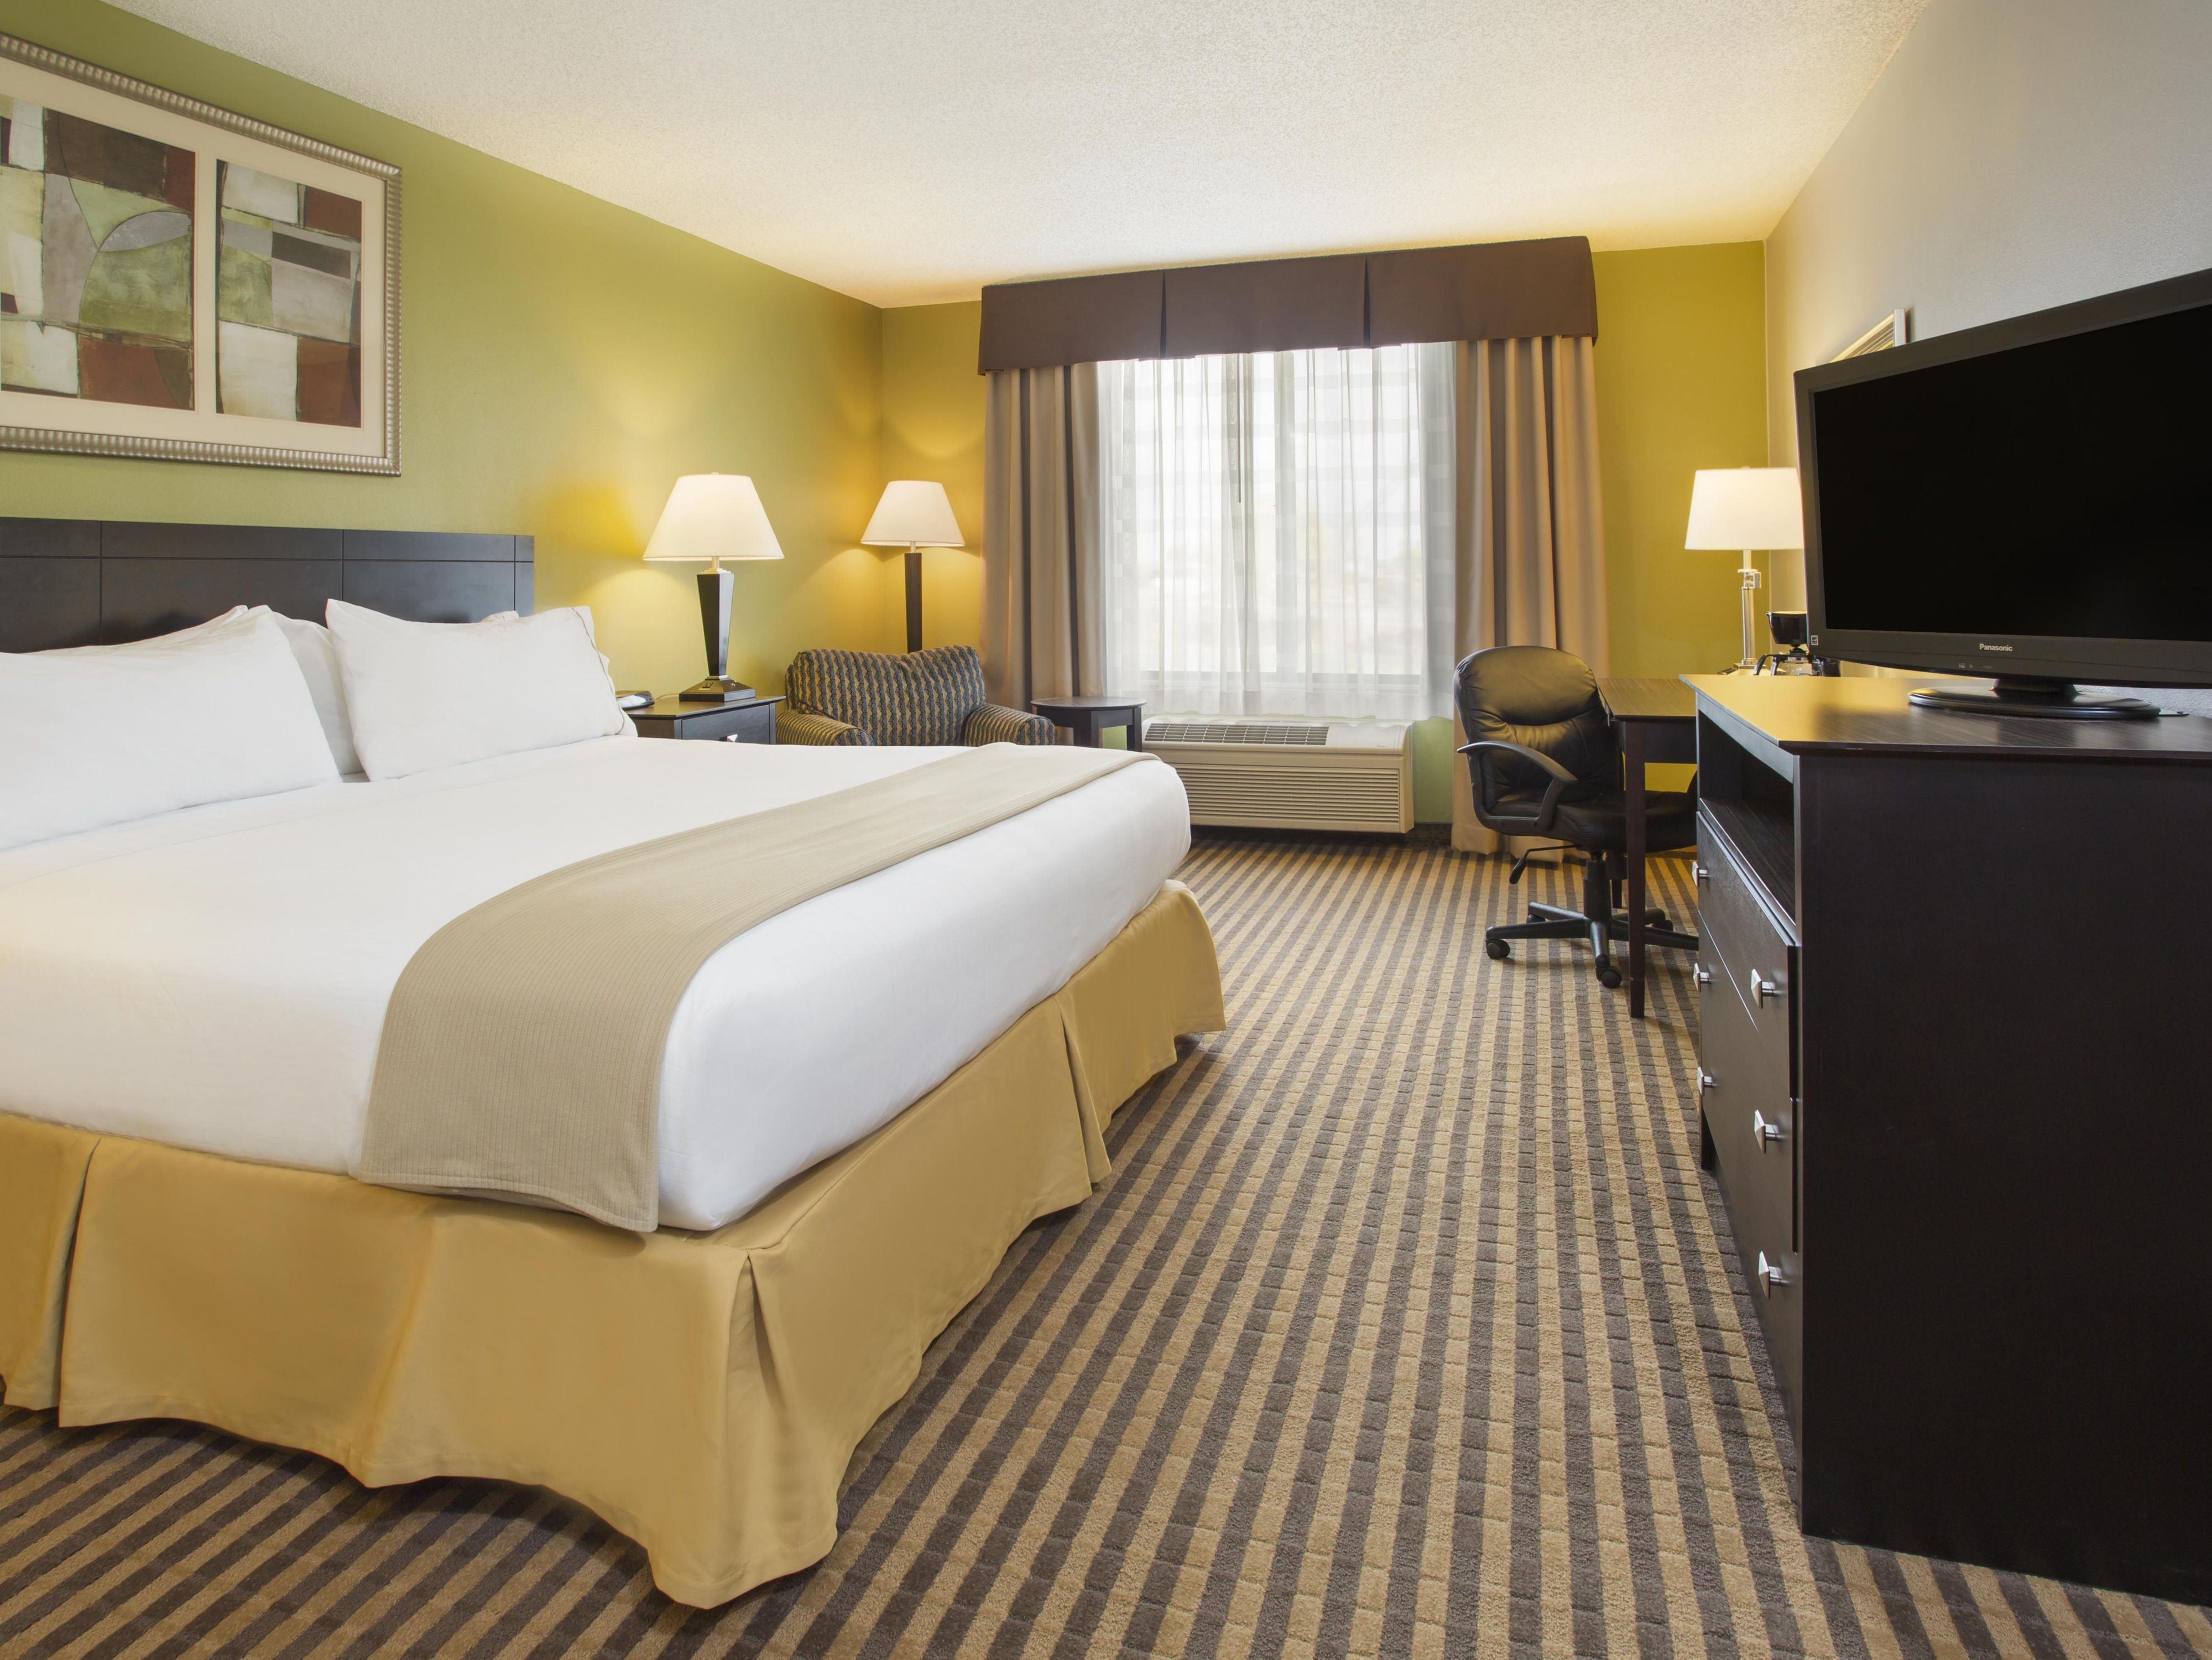 Holiday Inn Express & Suites Kalamazoo One King Bed Standard